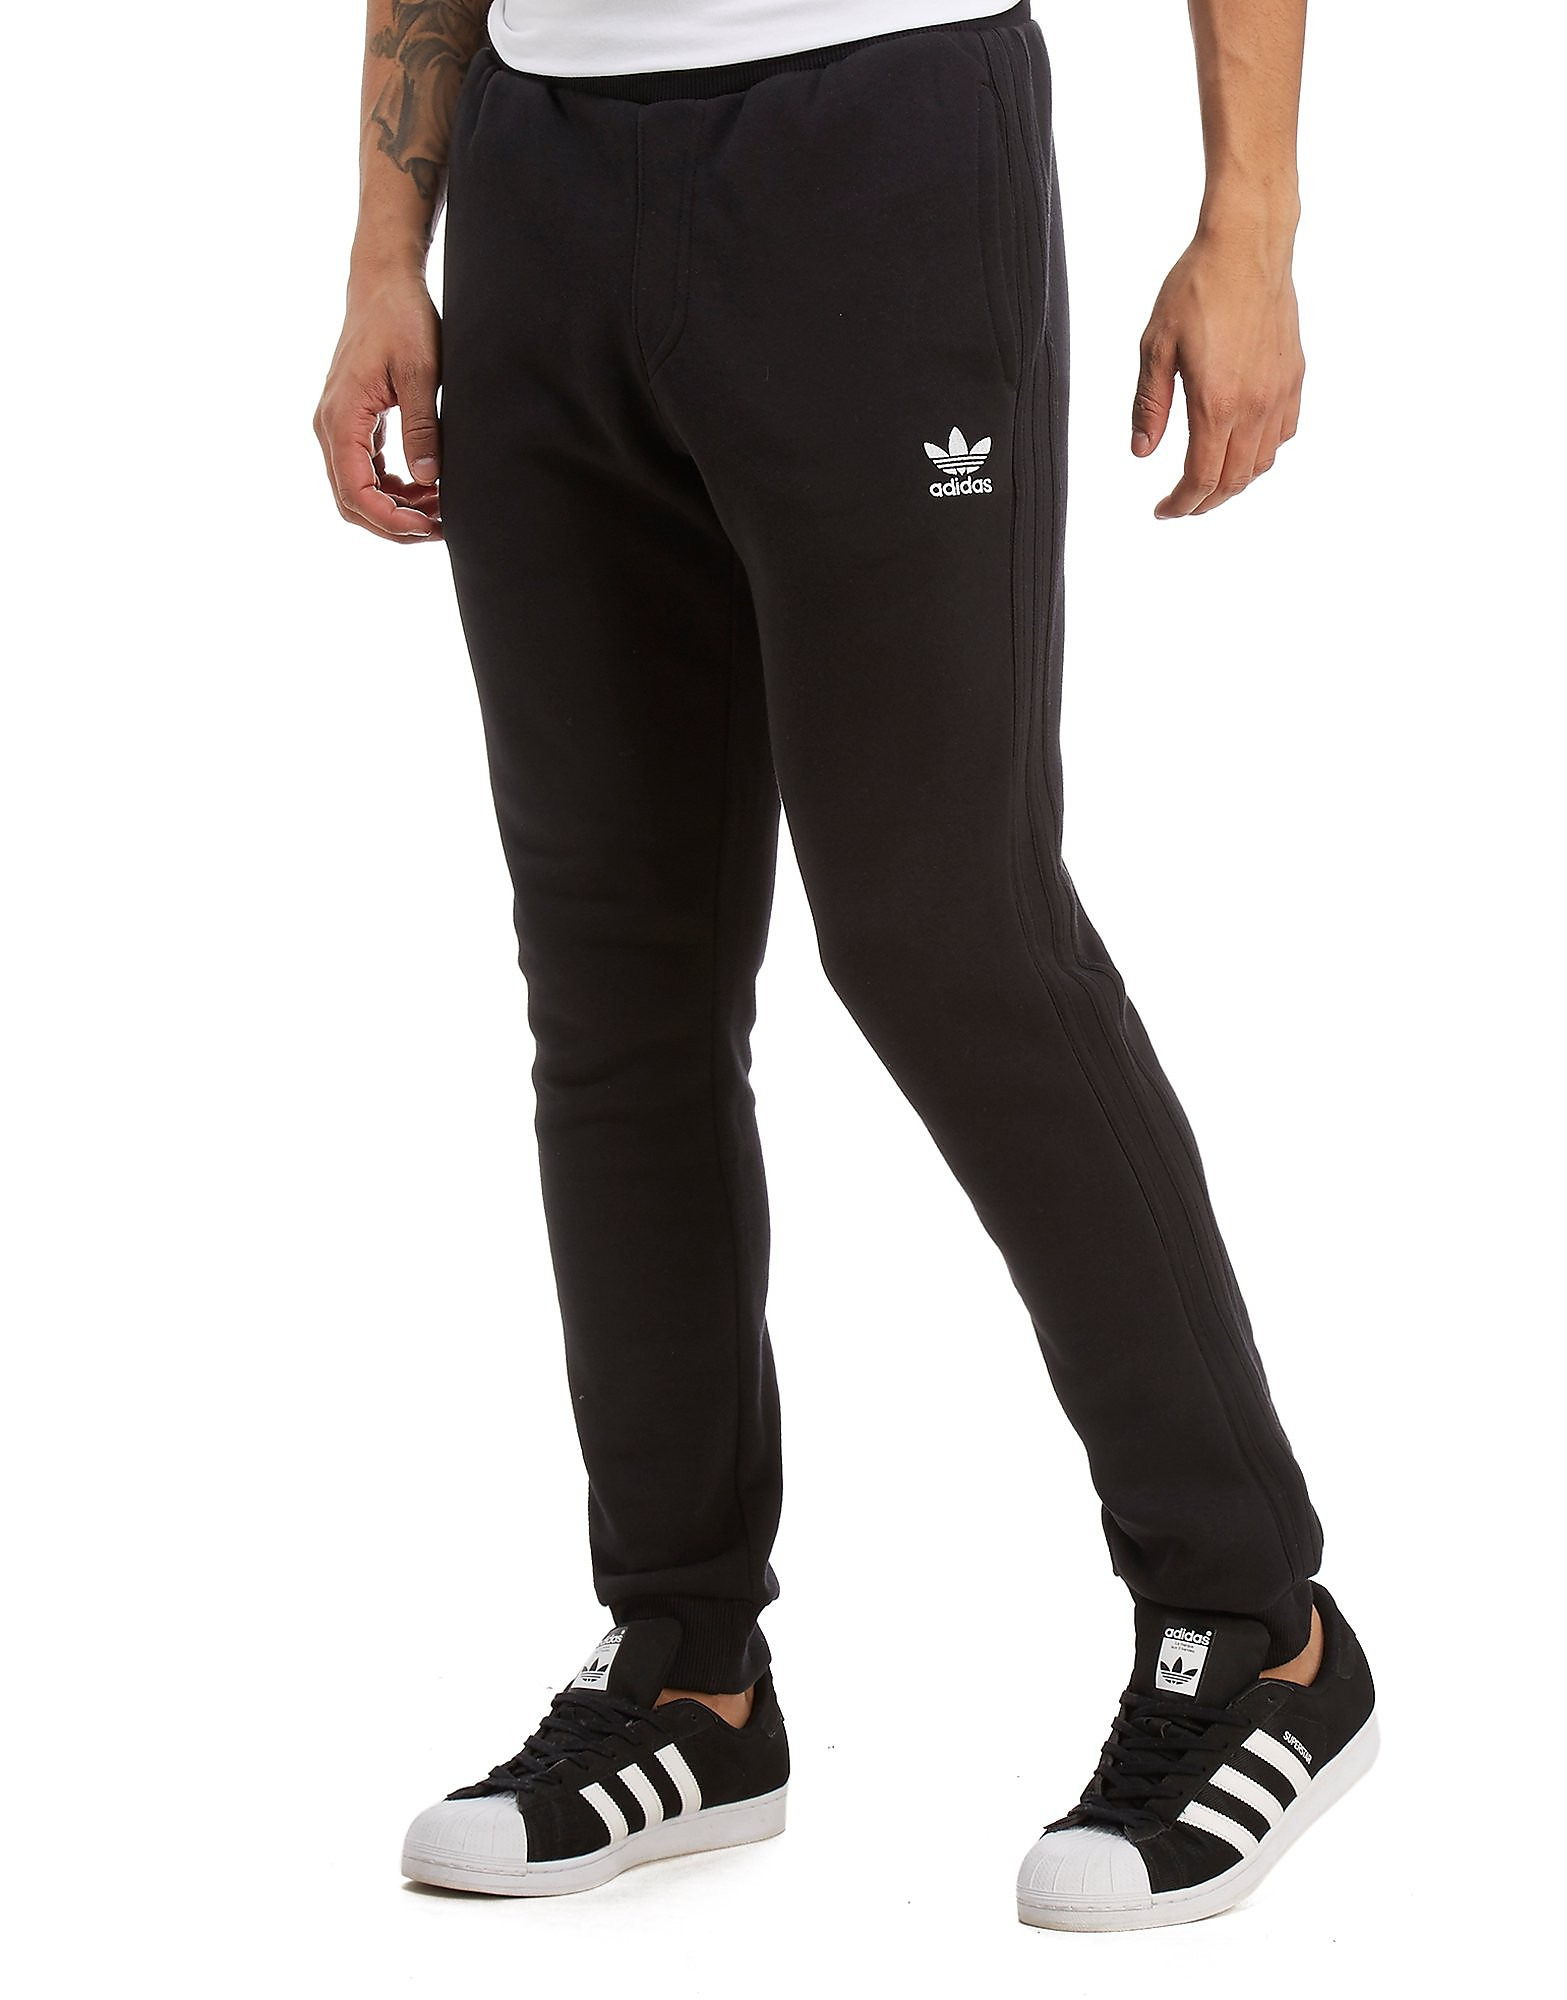 adidas Originals Trefoil Full Length Pants